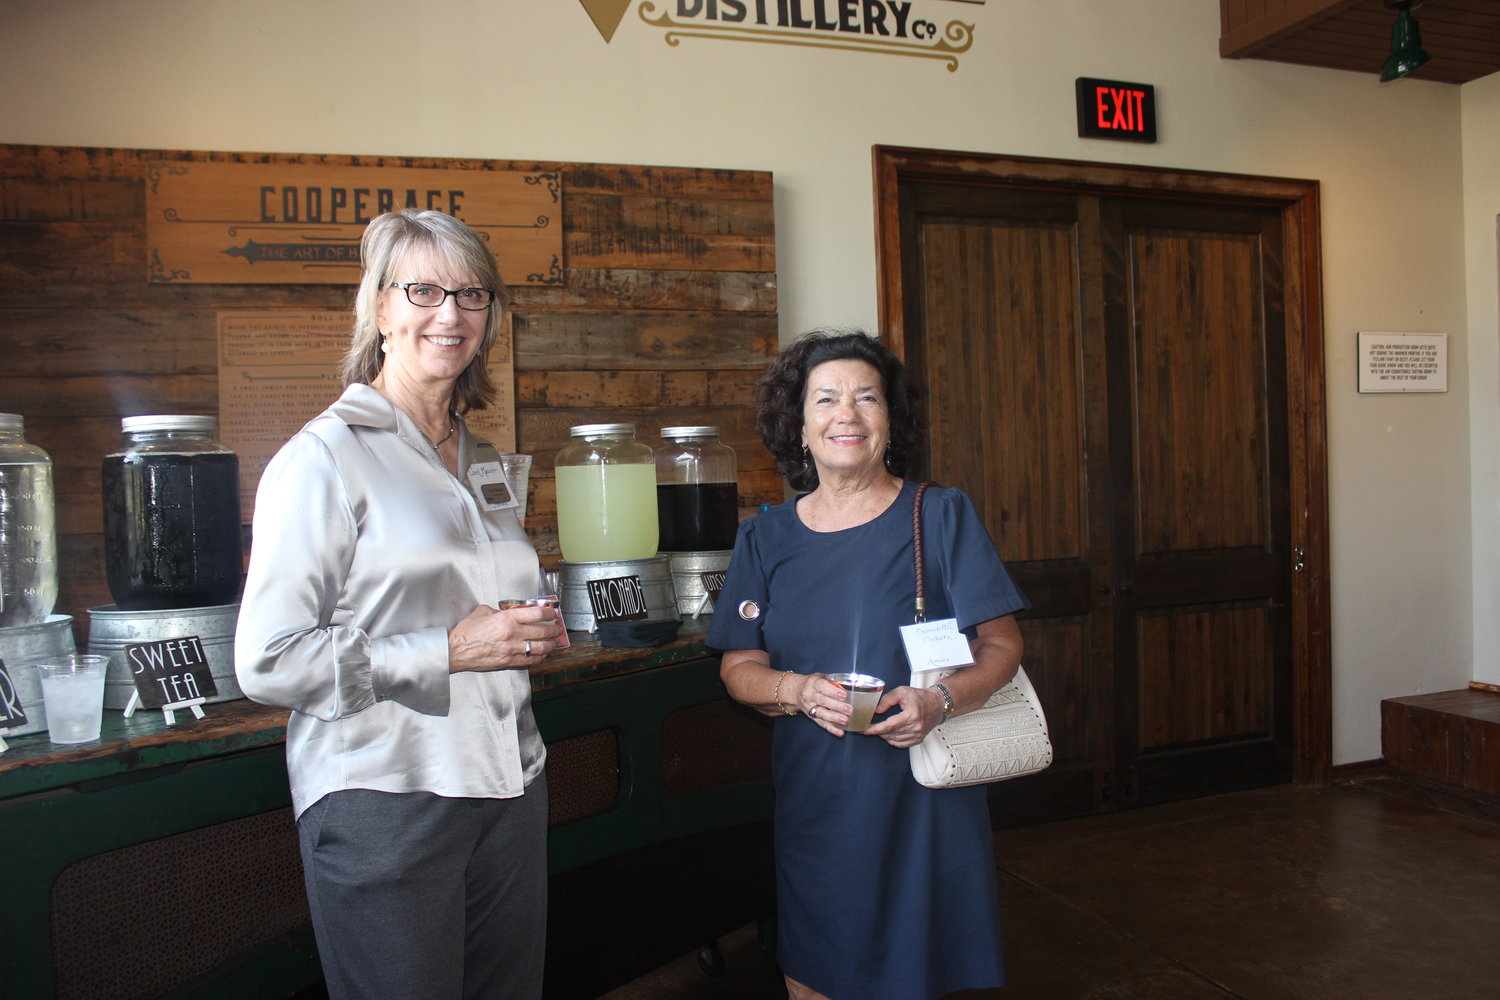 Members of the Women's Food Alliance, Carol Maurer and Benedetta Dubetz, enjoy some refreshments at the St. Augustine Distillery.